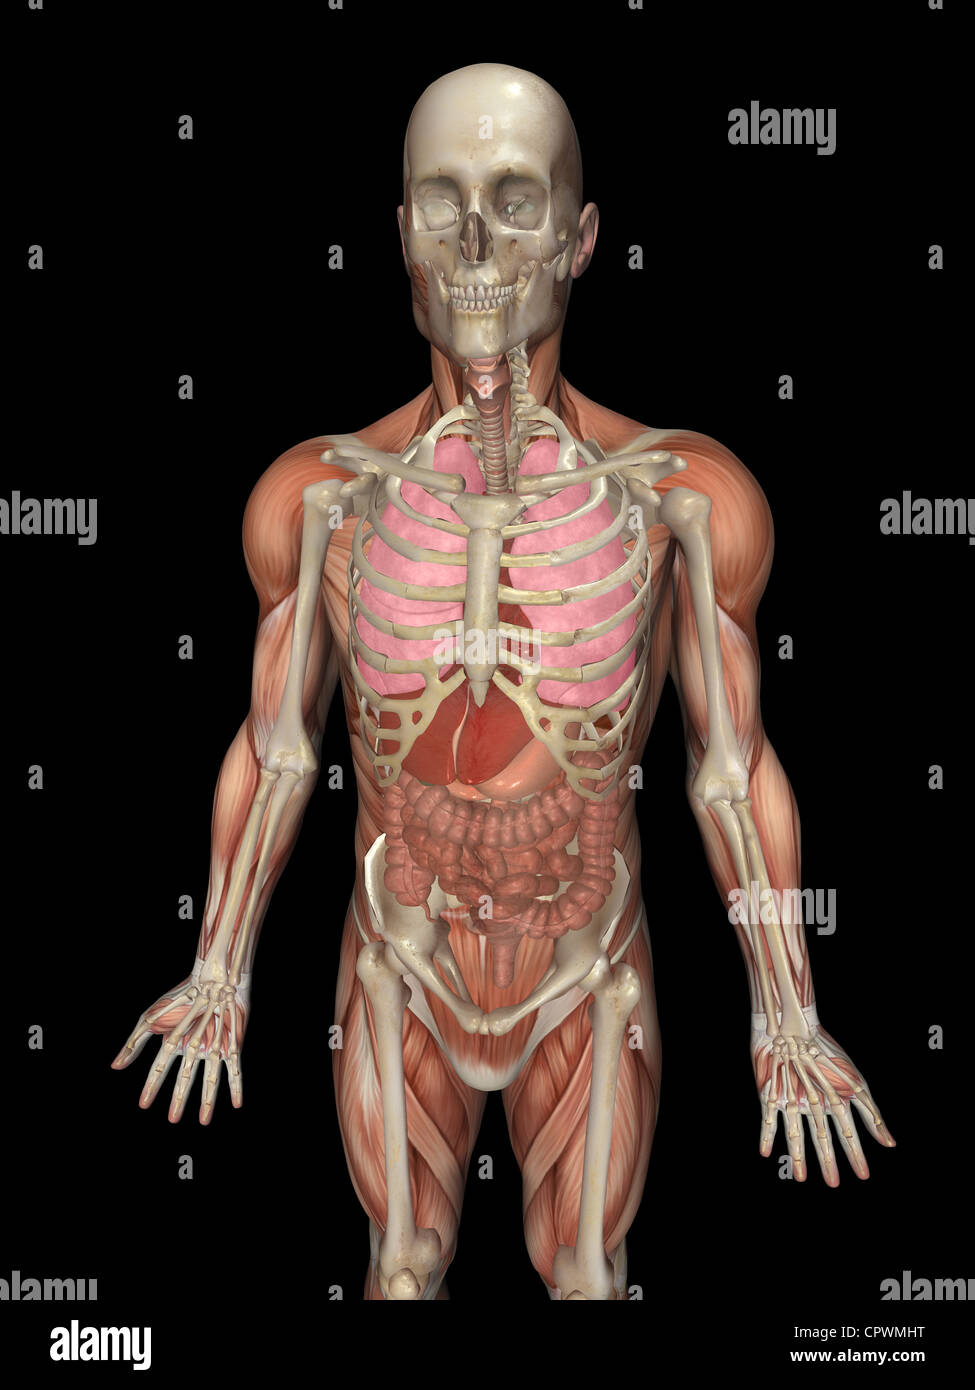 Anatomical illustration of the human body showing the major organ anatomical illustration of the human body showing the major organ ccuart Image collections